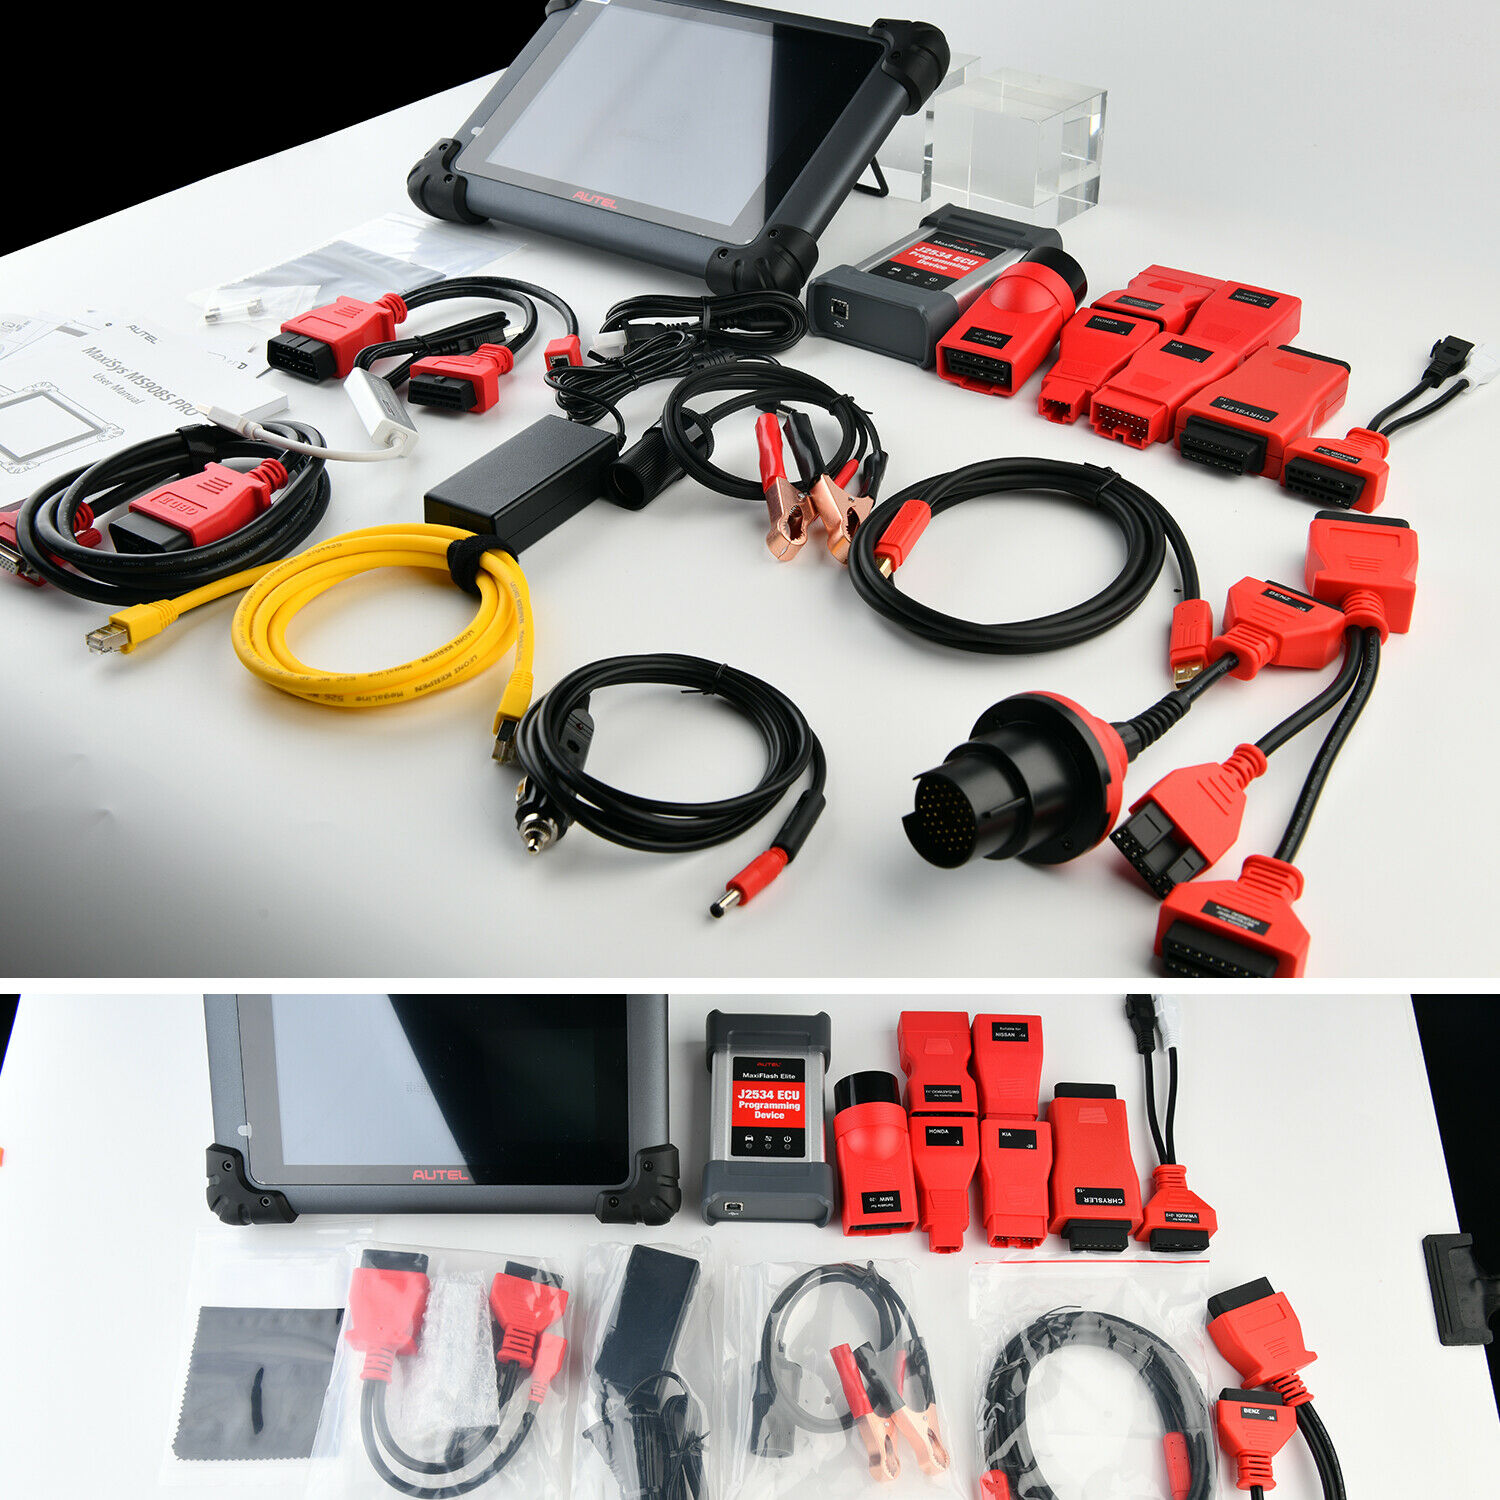 for Autel Maxisys MS908S Pro MS908SP auto <strong>Diagnostic</strong> <strong>tool</strong>+ECU Coding <strong>J2534</strong> car Programming <strong>tool</strong> replace Autel MaxiCOM MK908P